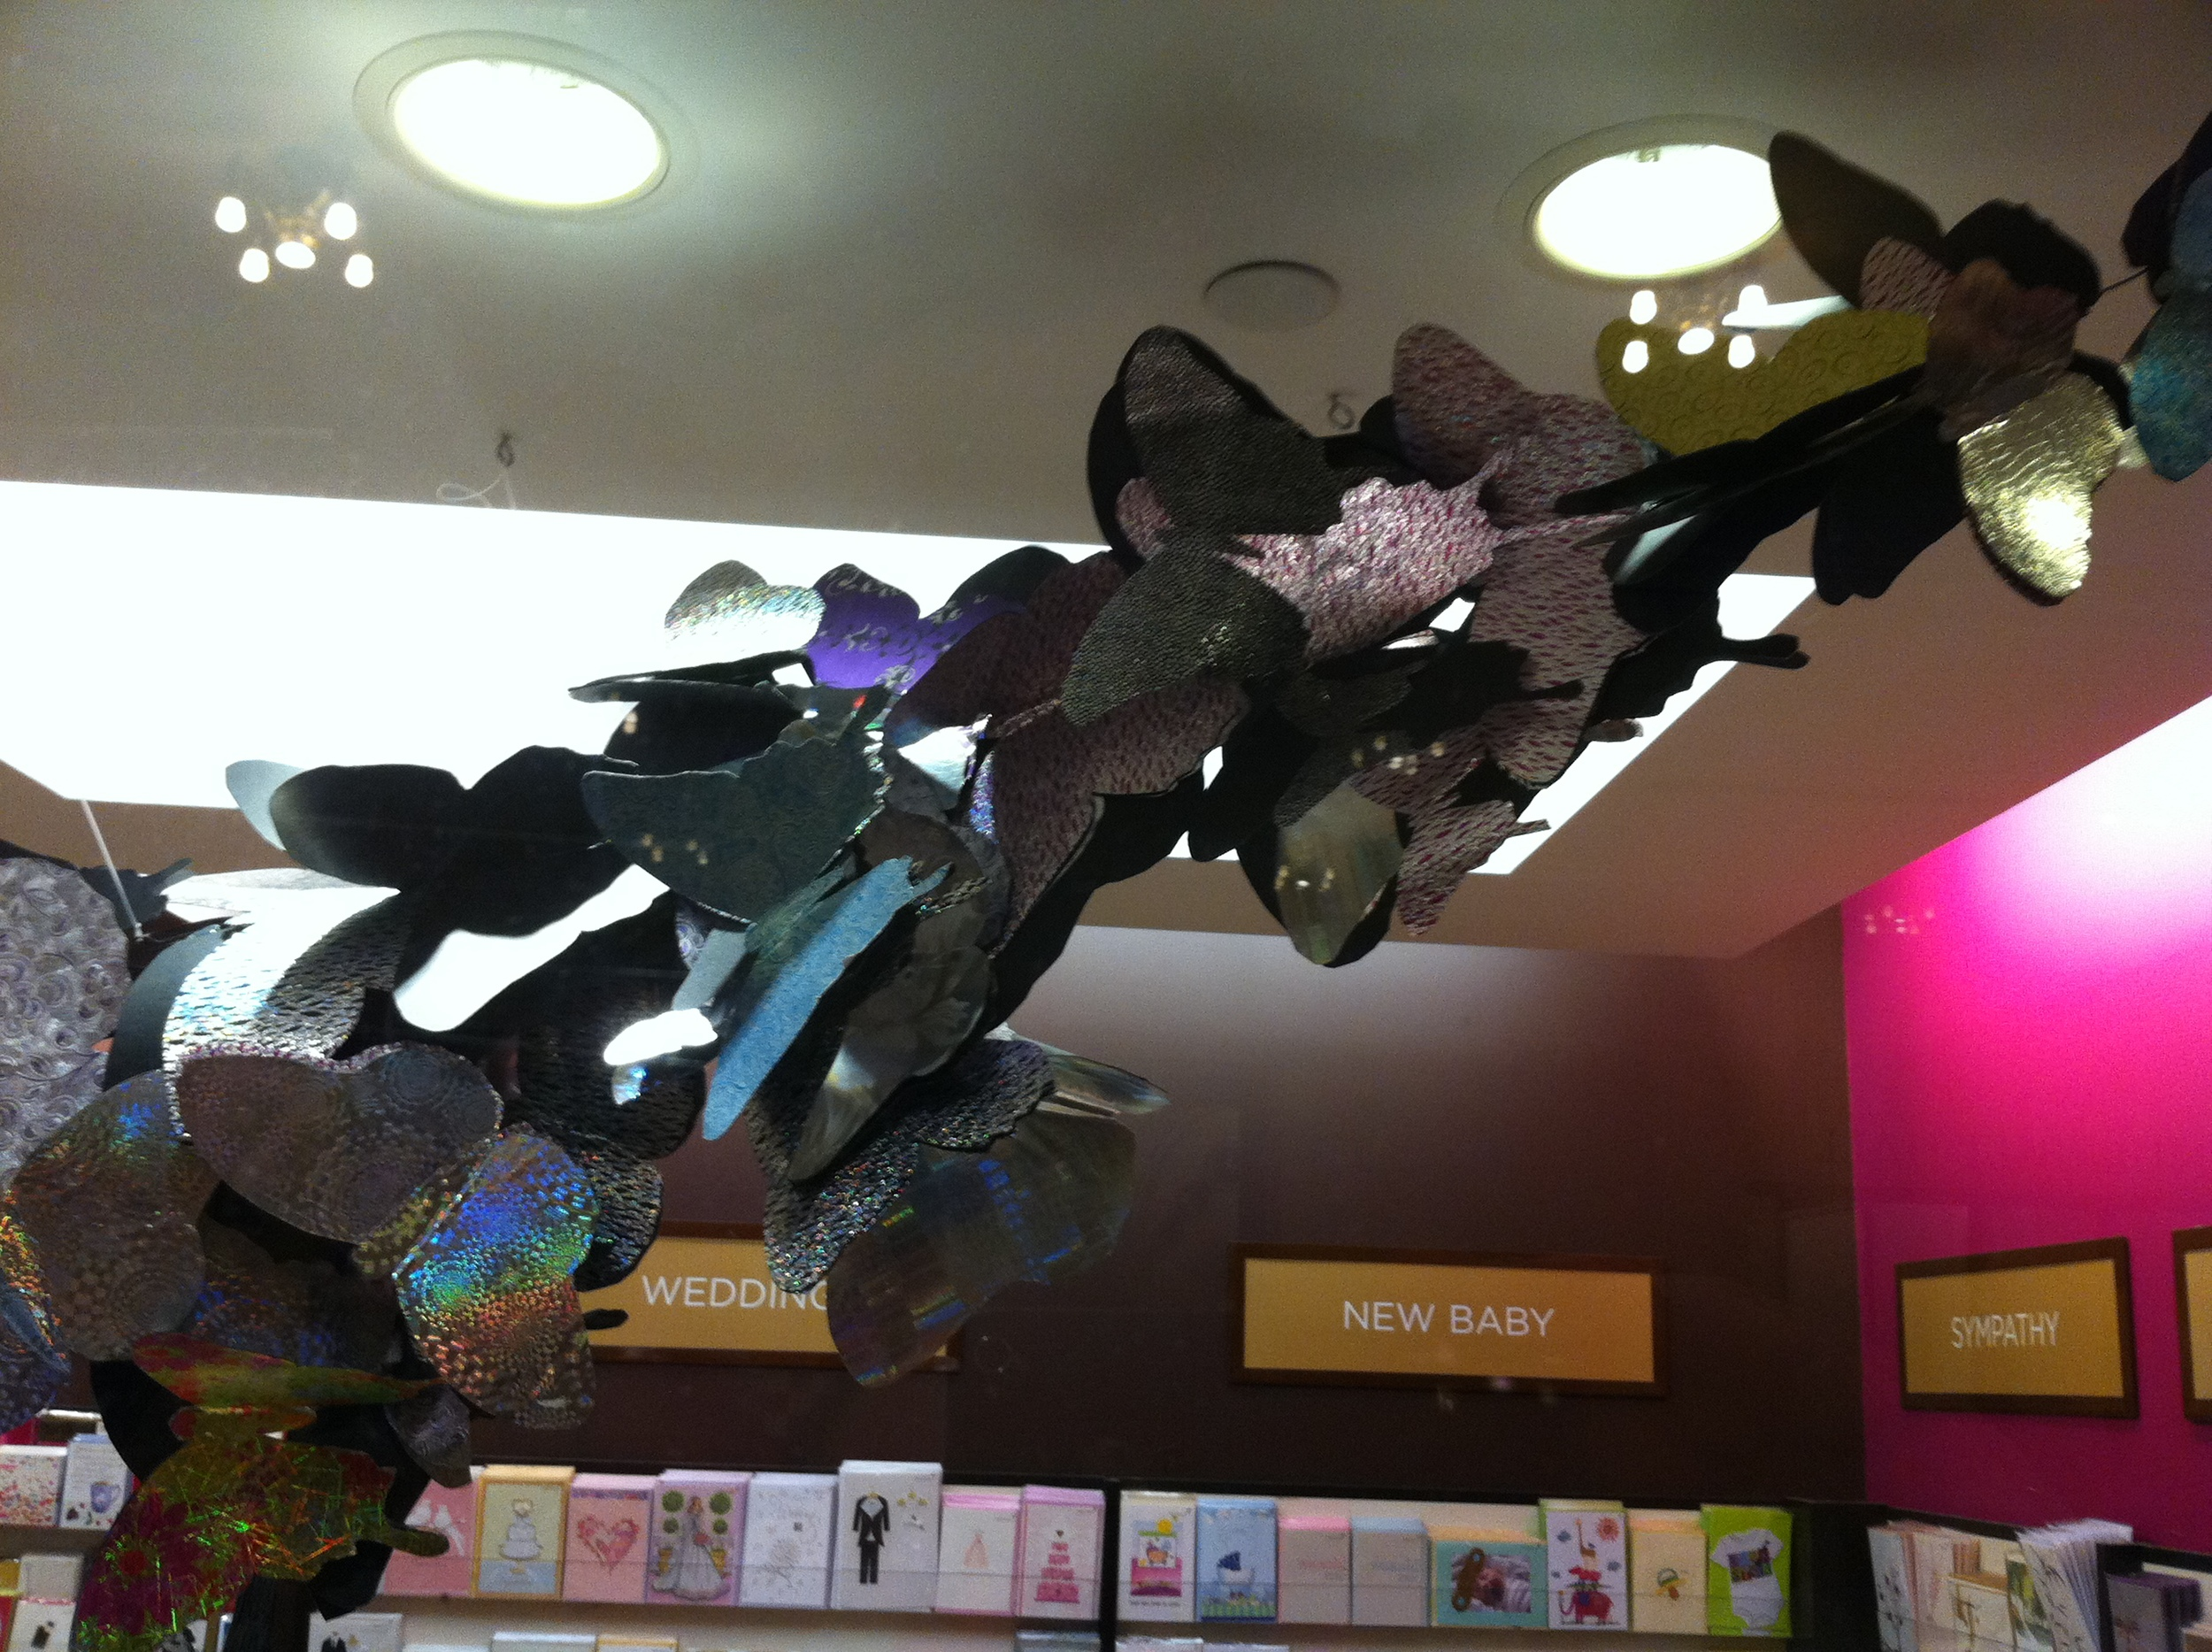 PAPYRUS STORE BUTTERFLY DISPLAY GRAND CENTRAL STATION NEW YORK CITY 4